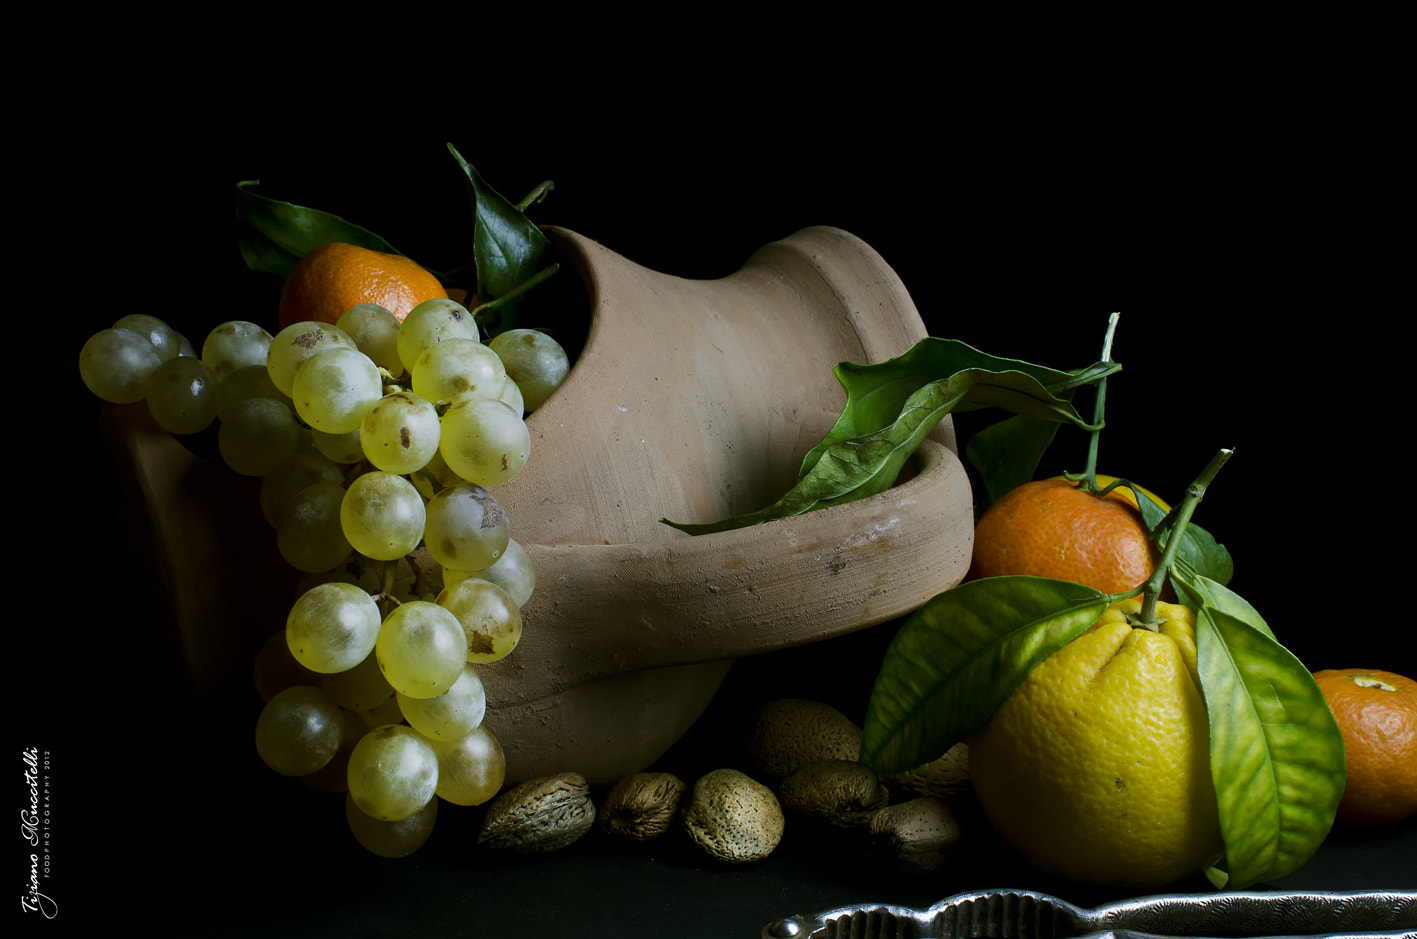 Photograph Gods Food by Chef Tiziano Muccitelli on 500px